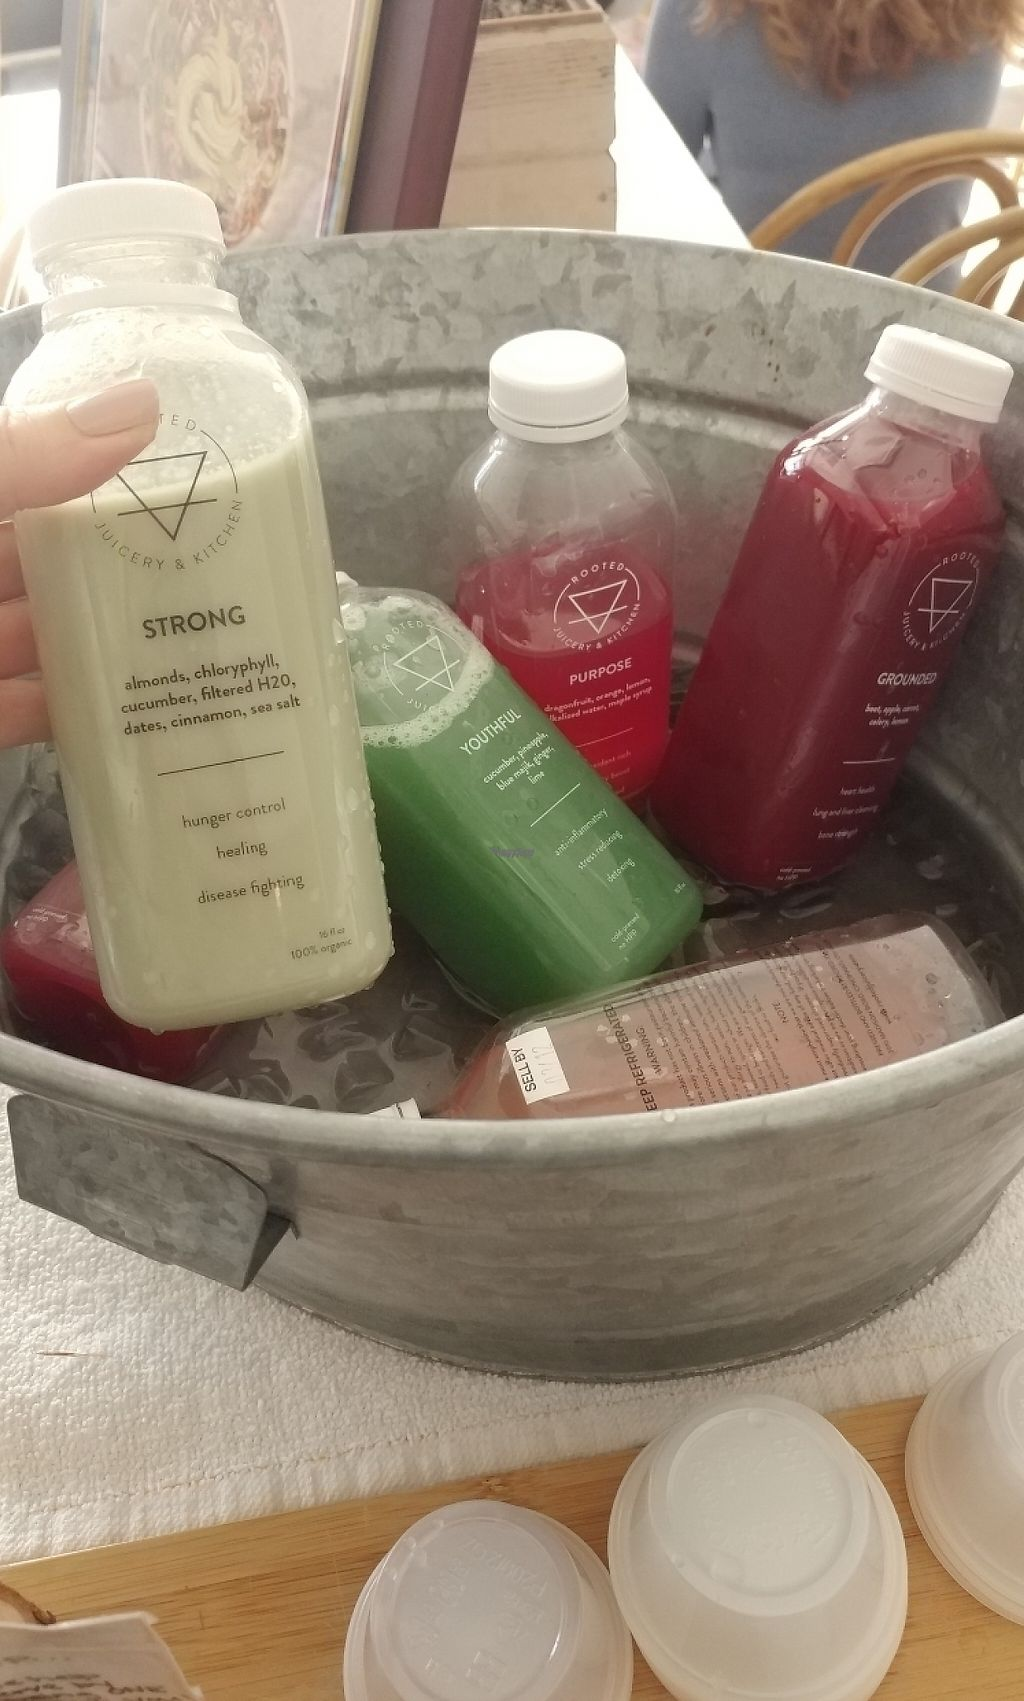 """Photo of Rooted Juicery and Kitchen  by <a href=""""/members/profile/KatBarry"""">KatBarry</a> <br/>Juice Samples <br/> March 15, 2017  - <a href='/contact/abuse/image/63466/236628'>Report</a>"""